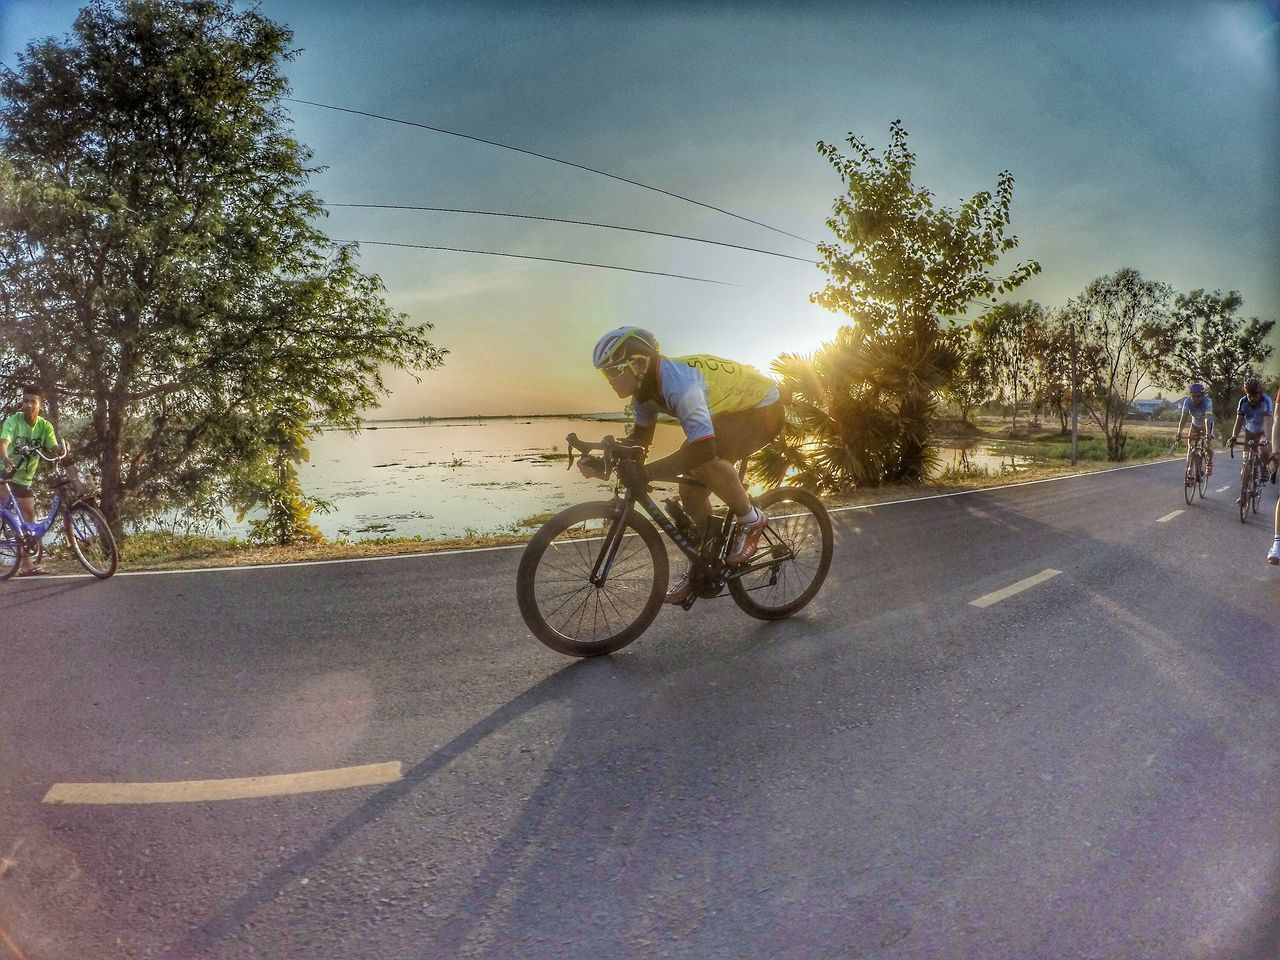 road, tree, transportation, bicycle, full length, riding, real people, cycling, two people, men, land vehicle, outdoors, day, cycling helmet, helmet, adventure, sky, friendship, people